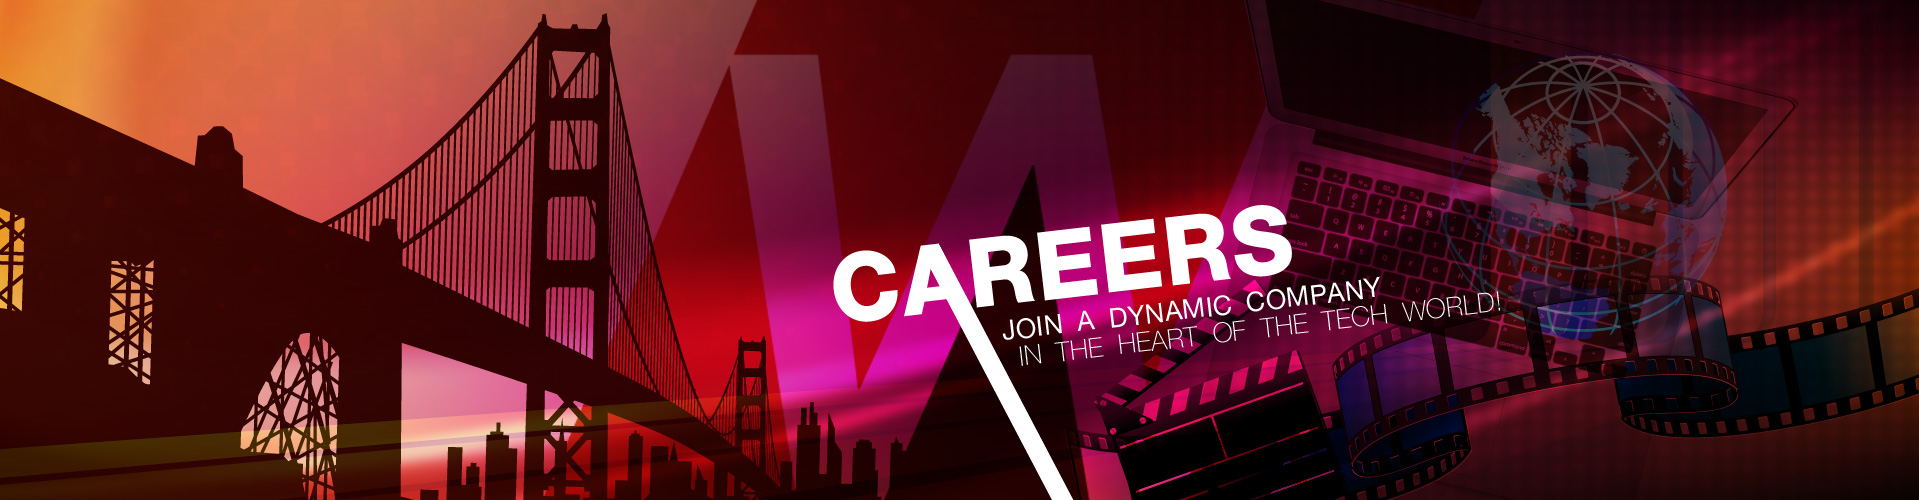 banner02_careers